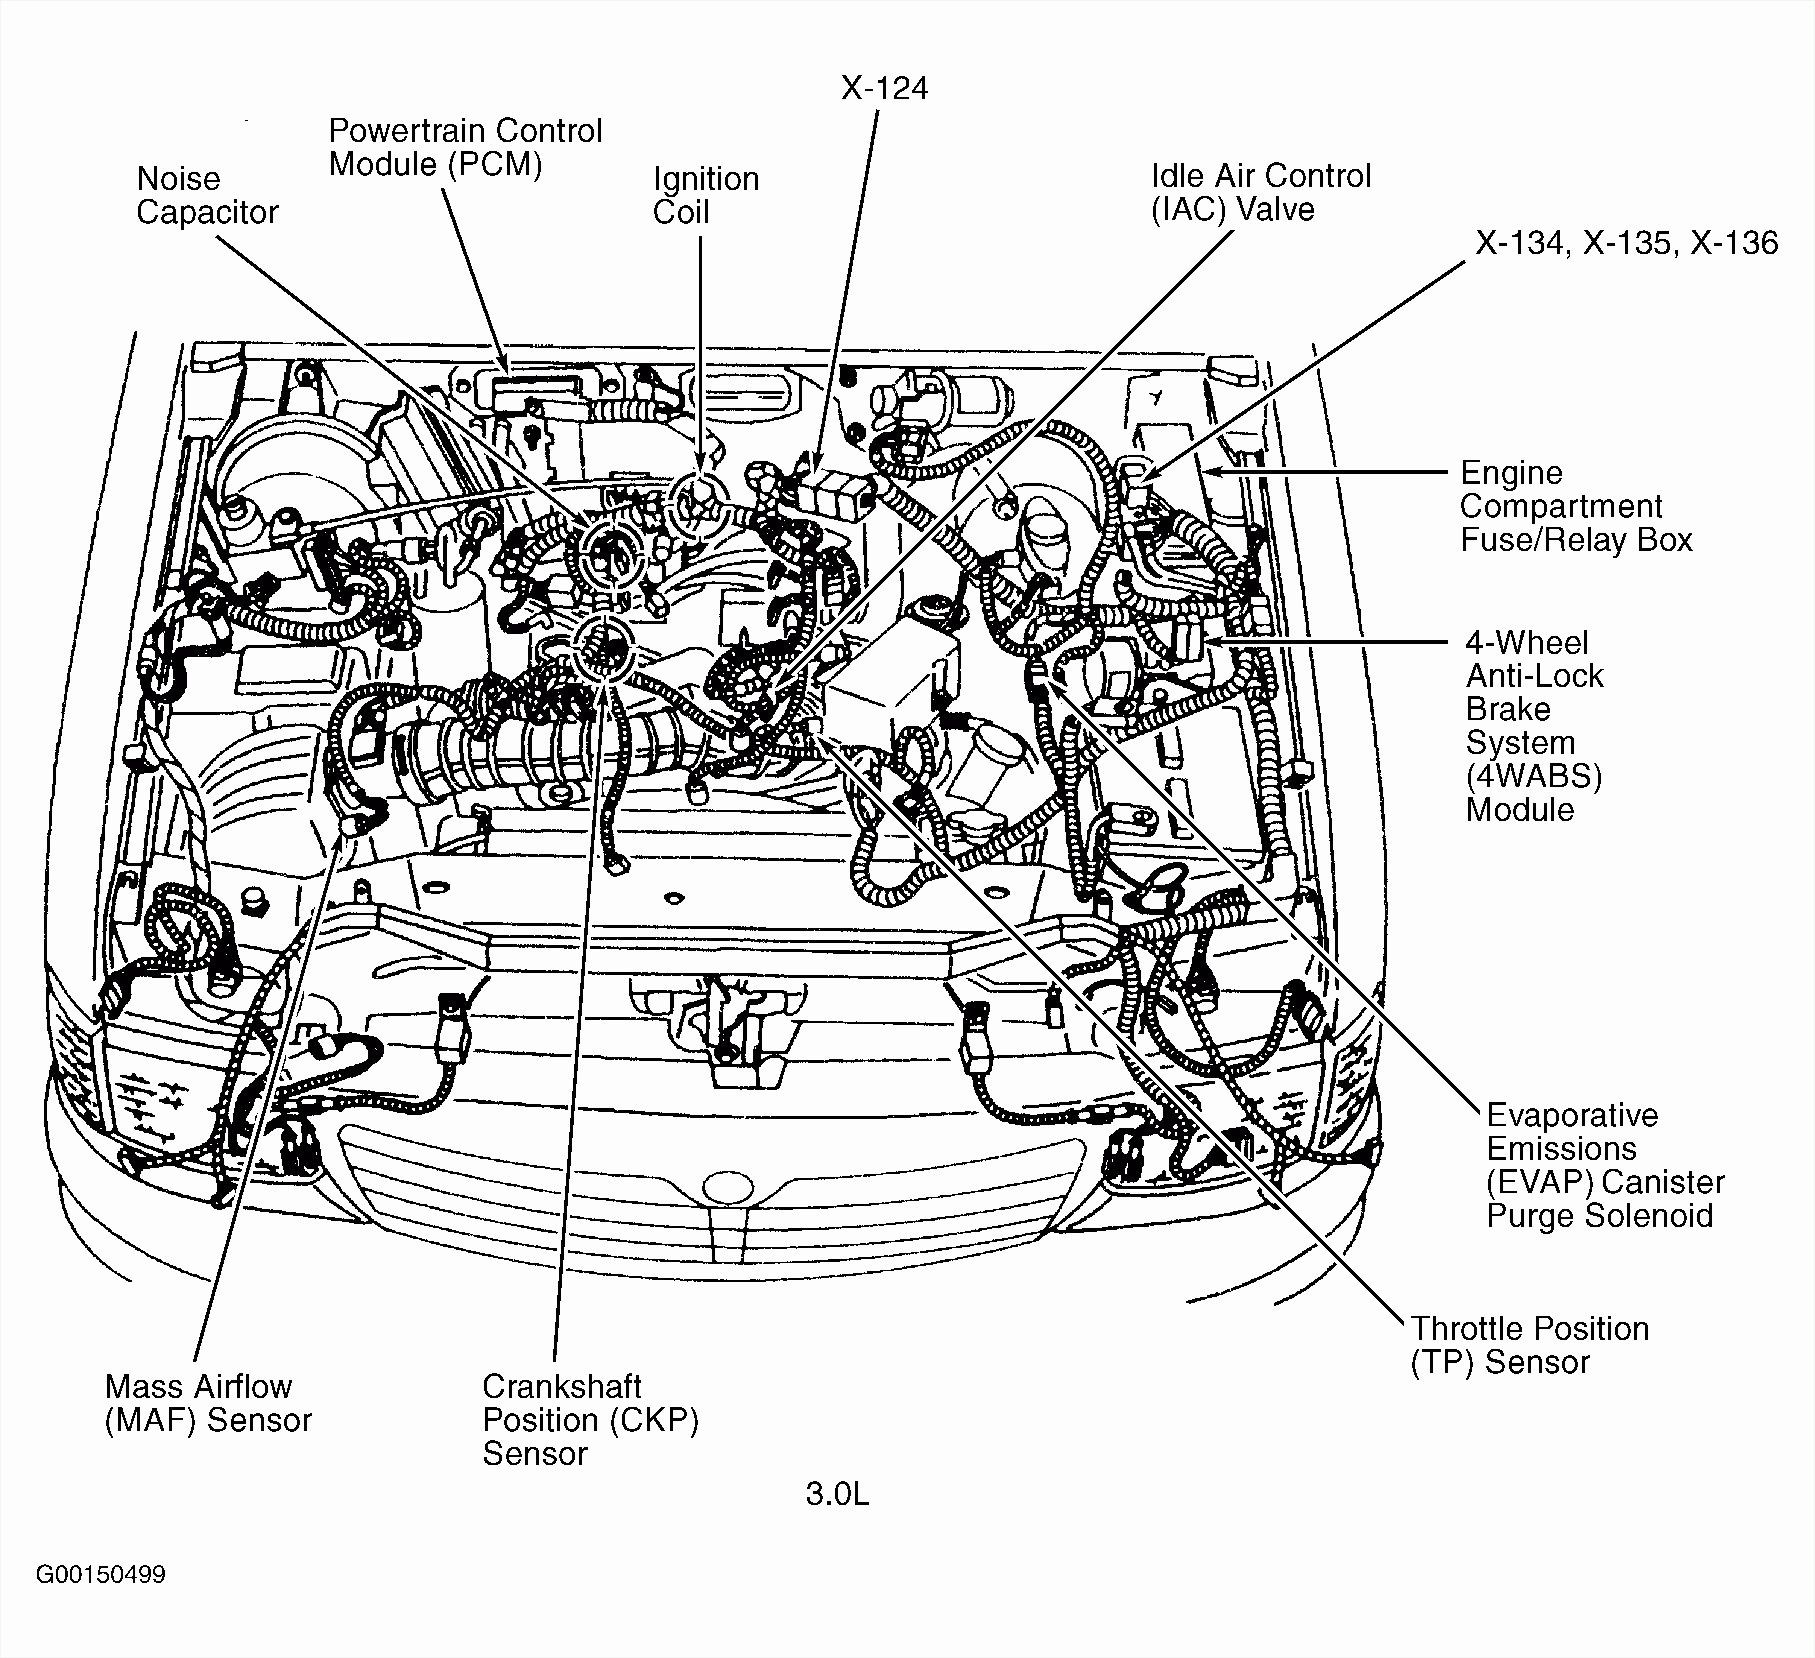 5 7 Vortec Engine Diagram 2 1999 5 7 Vortec Engine Diagram Wiring Diagram toolbox Of 5 7 Vortec Engine Diagram 2 96 4 3 Vortec Ecu Wiring Diagram Wiring Diagram for You